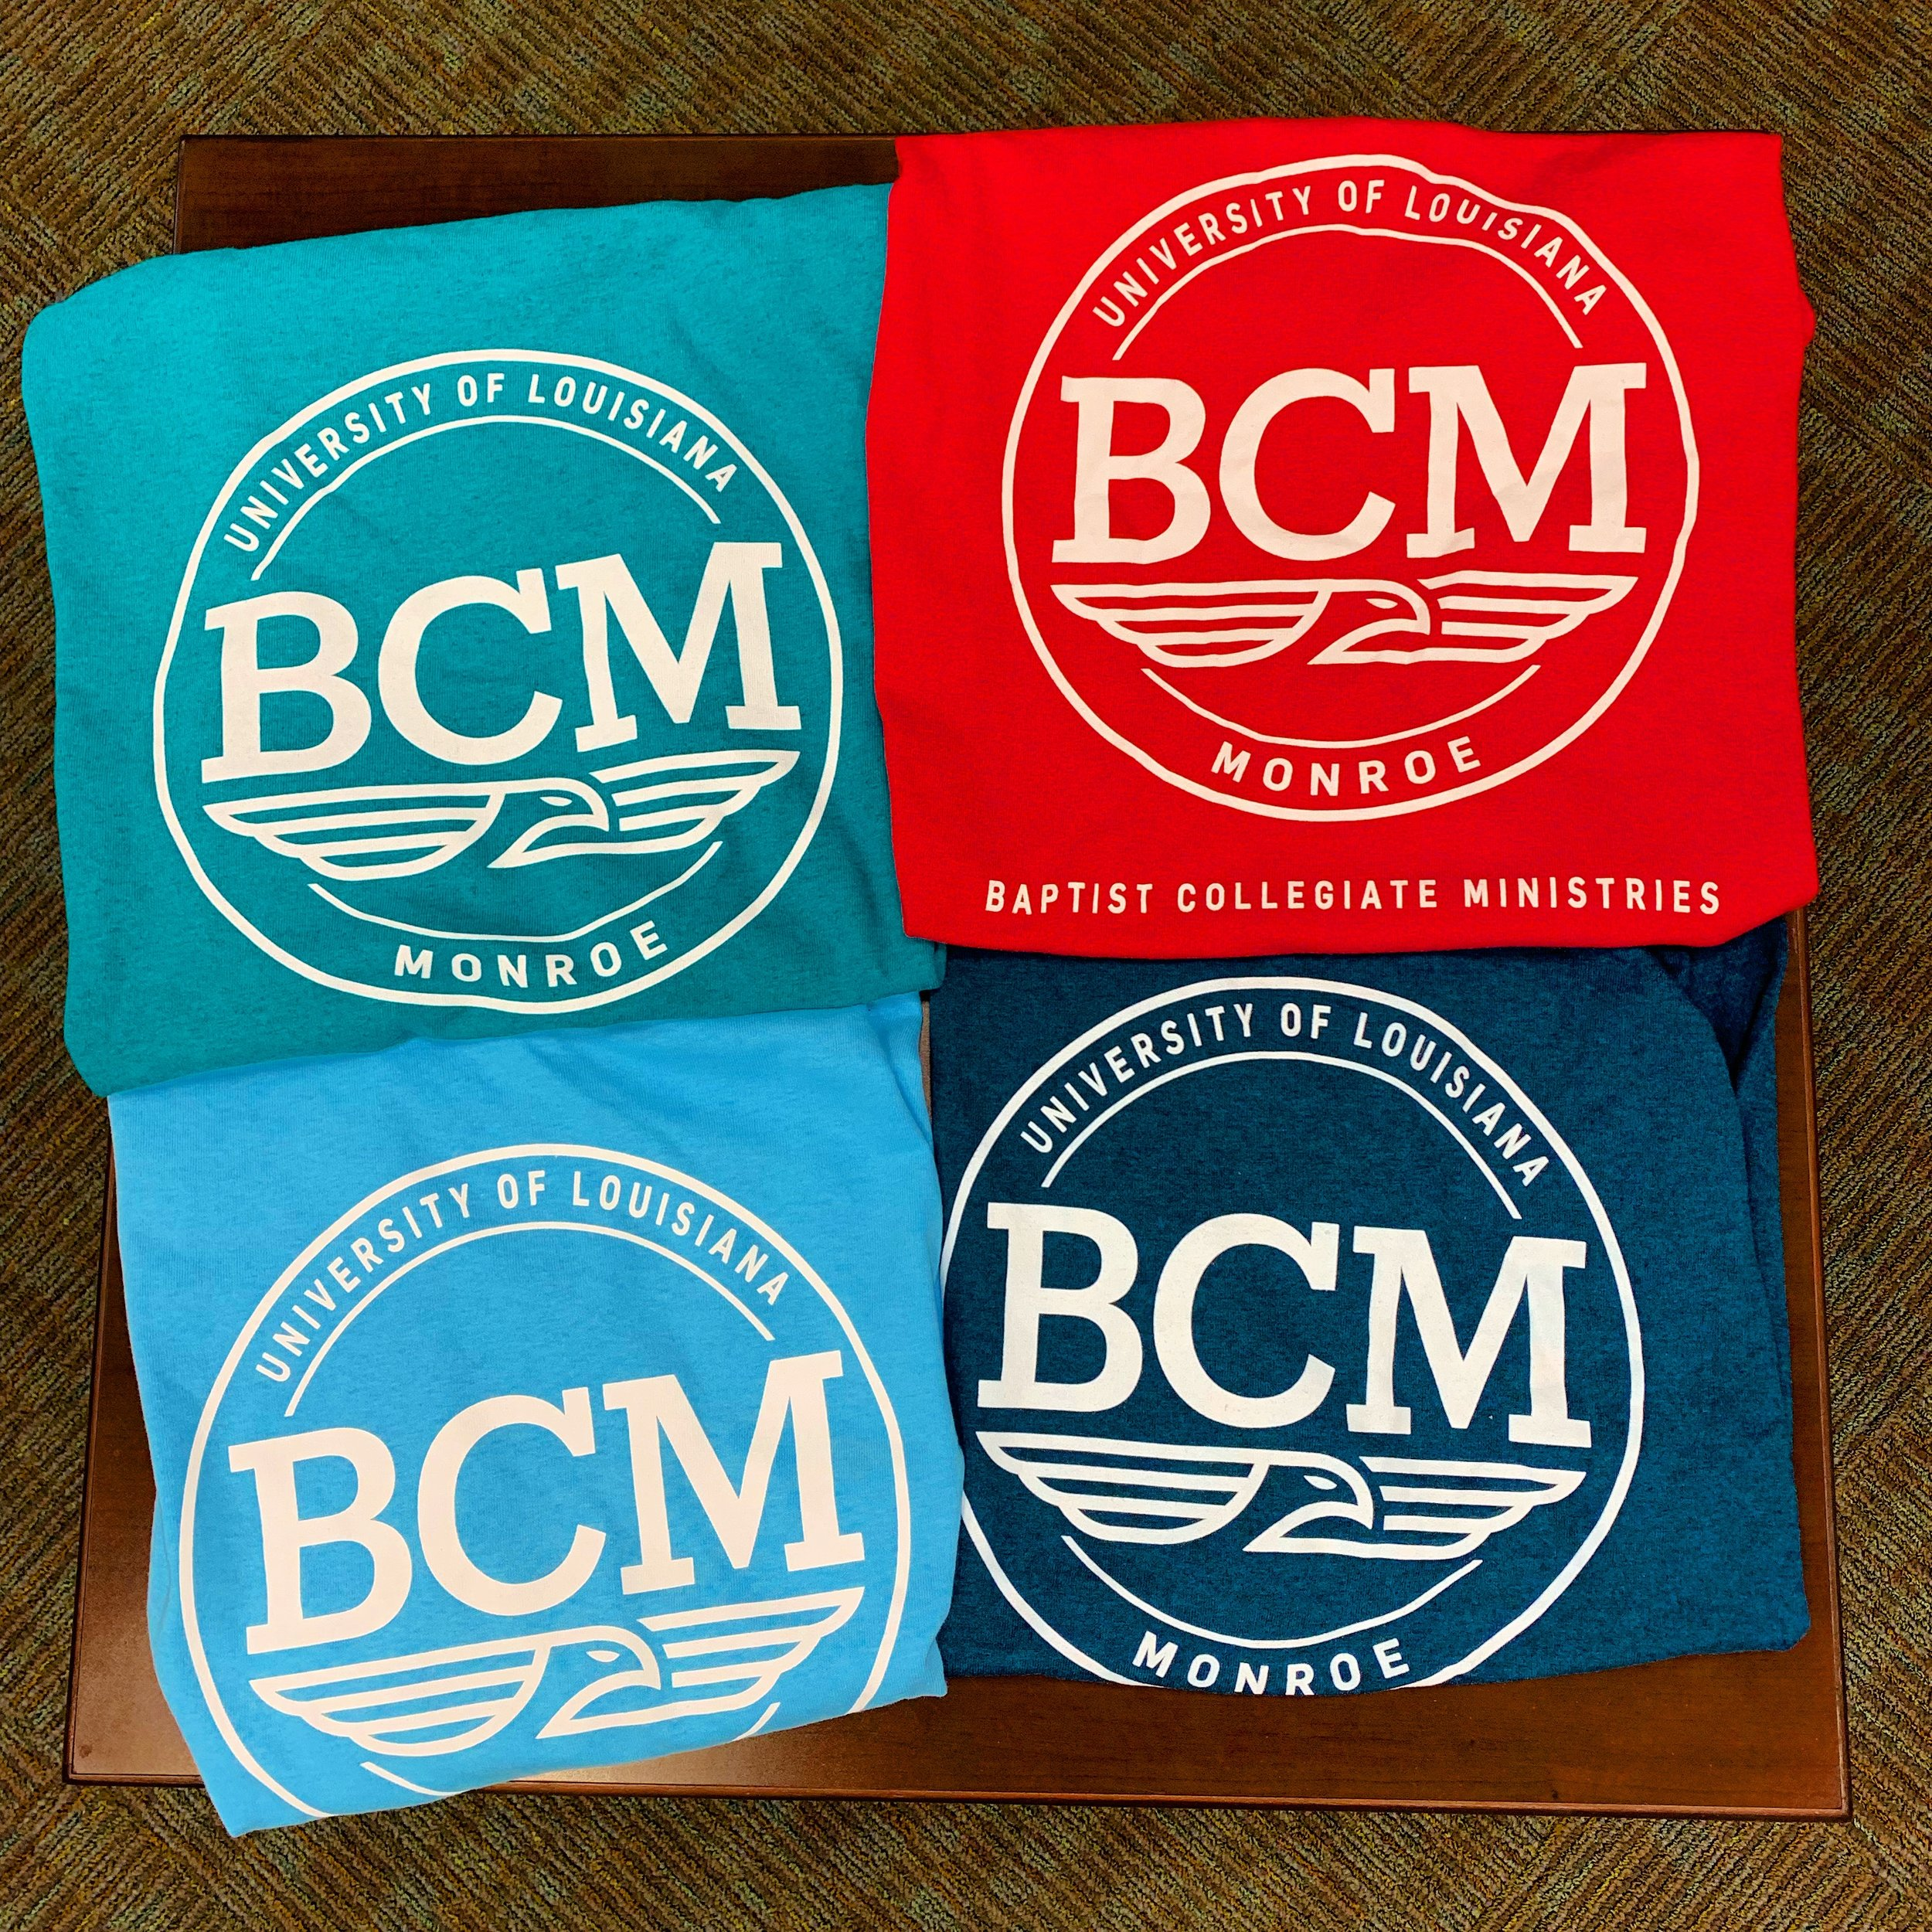 Want a FREE T-Shirt??? - The first 50 new Warhawks at each Prep session who complete this info form can pick up a FREE BCM T-Shirt. Shirts are available at free BCM Lunch on Thursday during Prep from 11:30am-12:30pm. ULM BCM is located at 1005 University Avenue across from Ouachita Residence Hall.